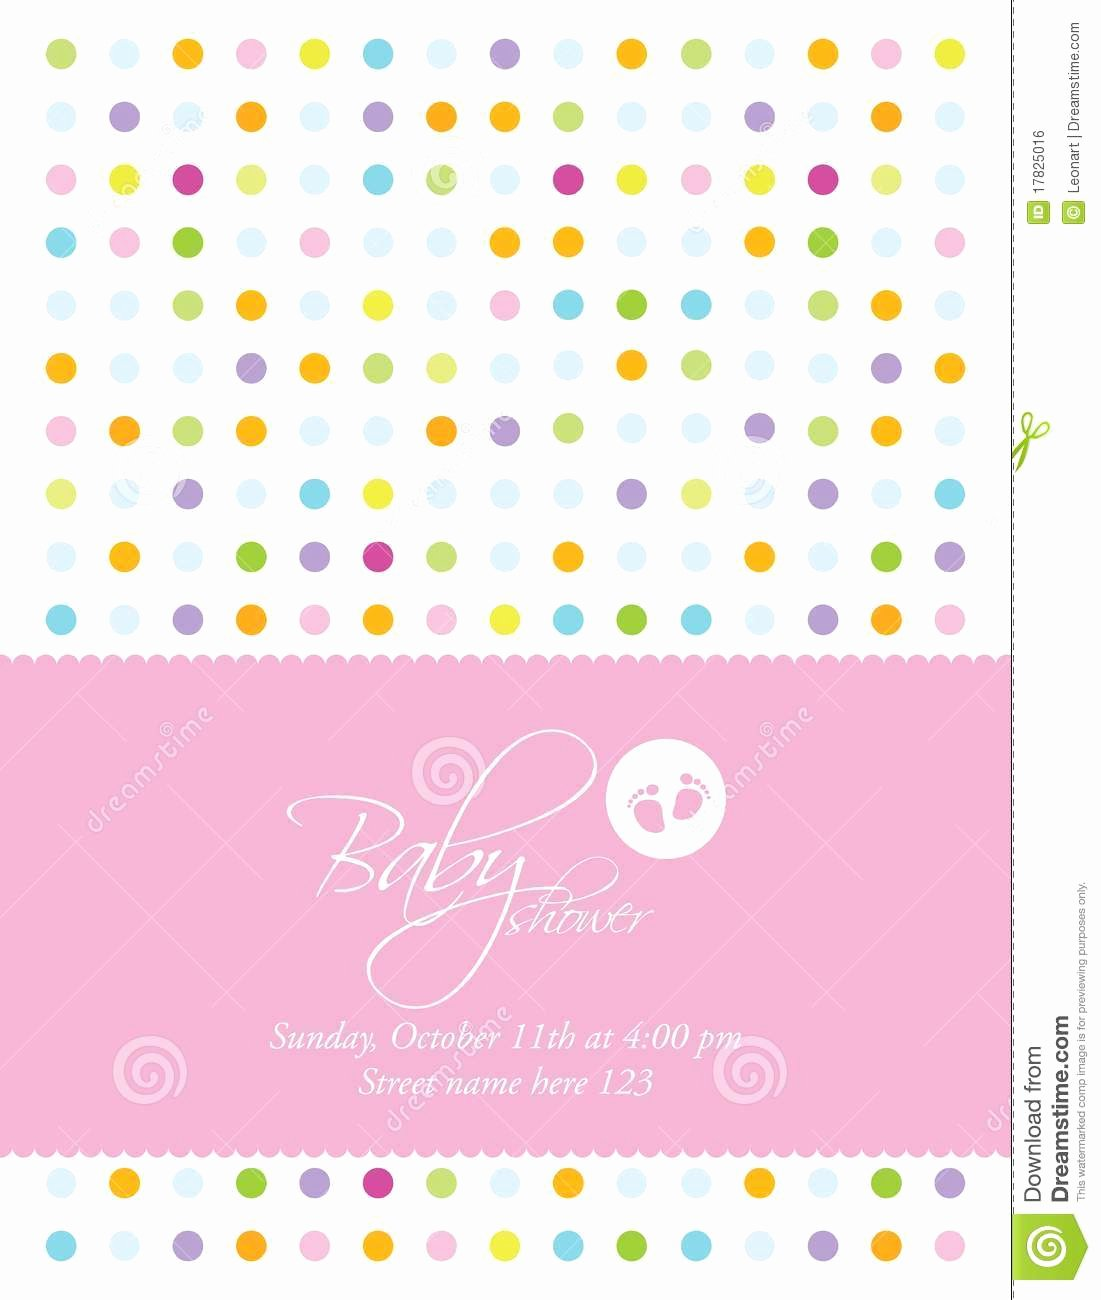 Baby Shower Card Template Royalty Free Stock Image Image